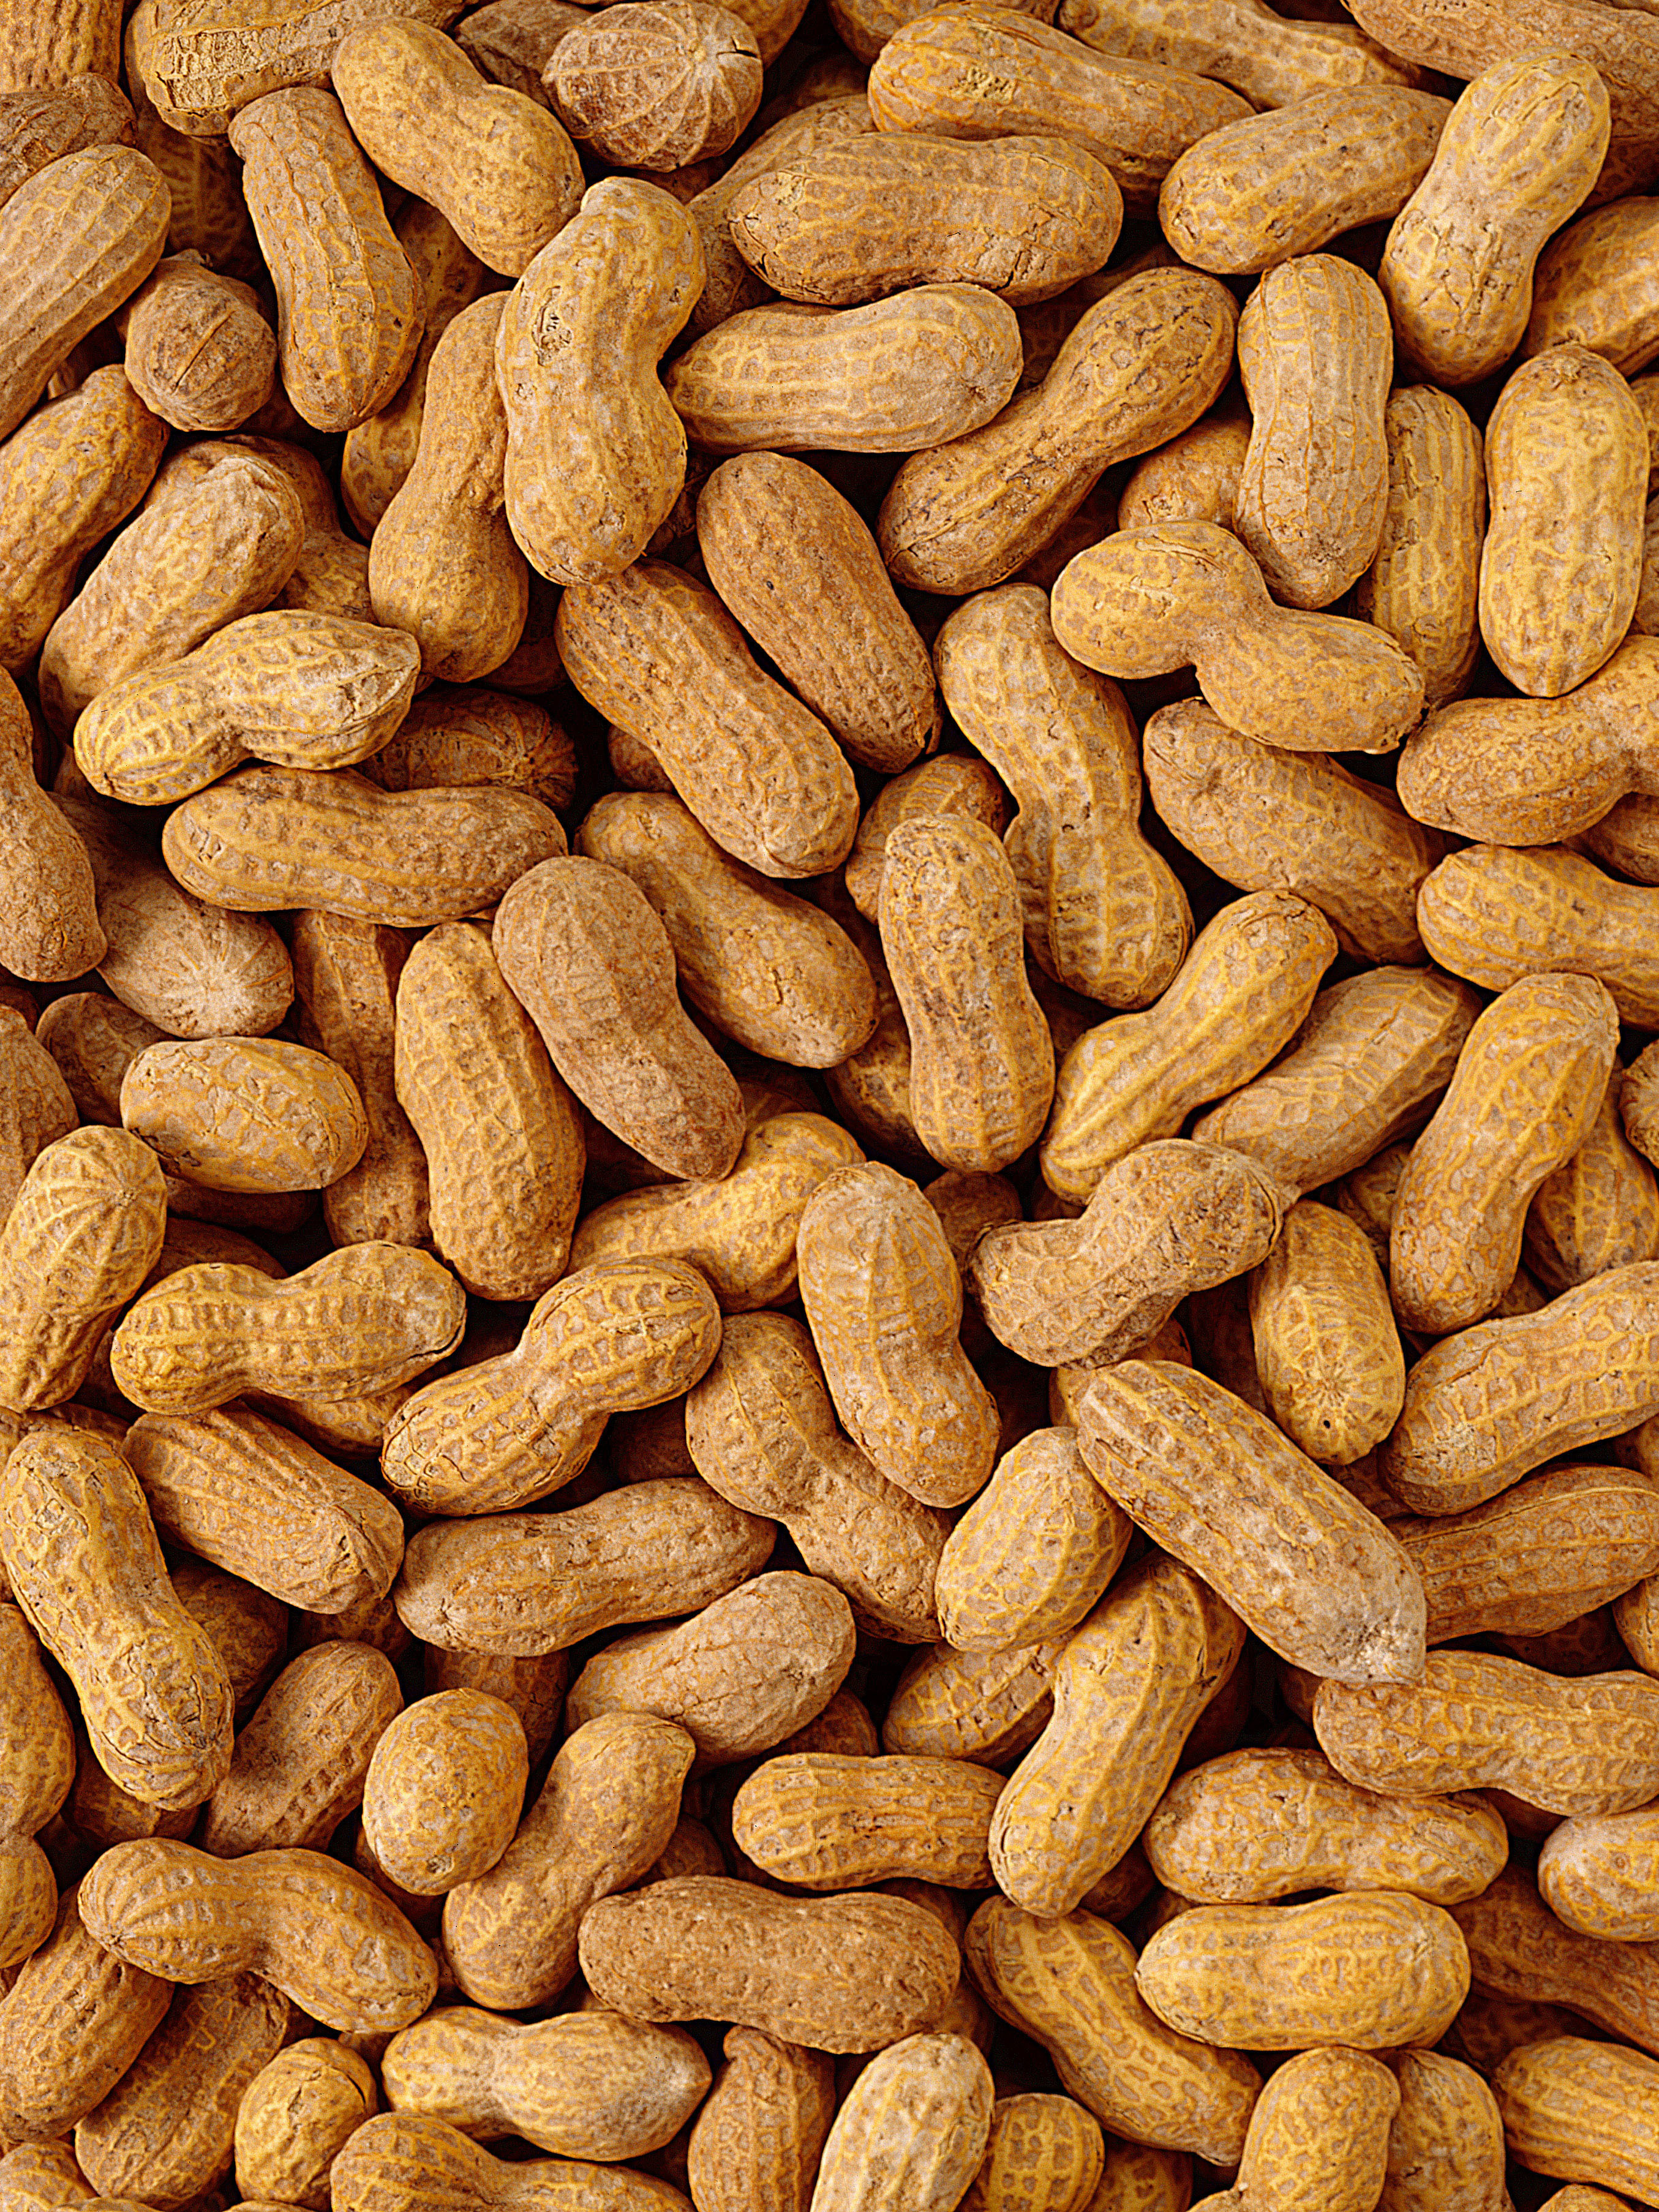 food peanuts nuts Food HD Wallpaper